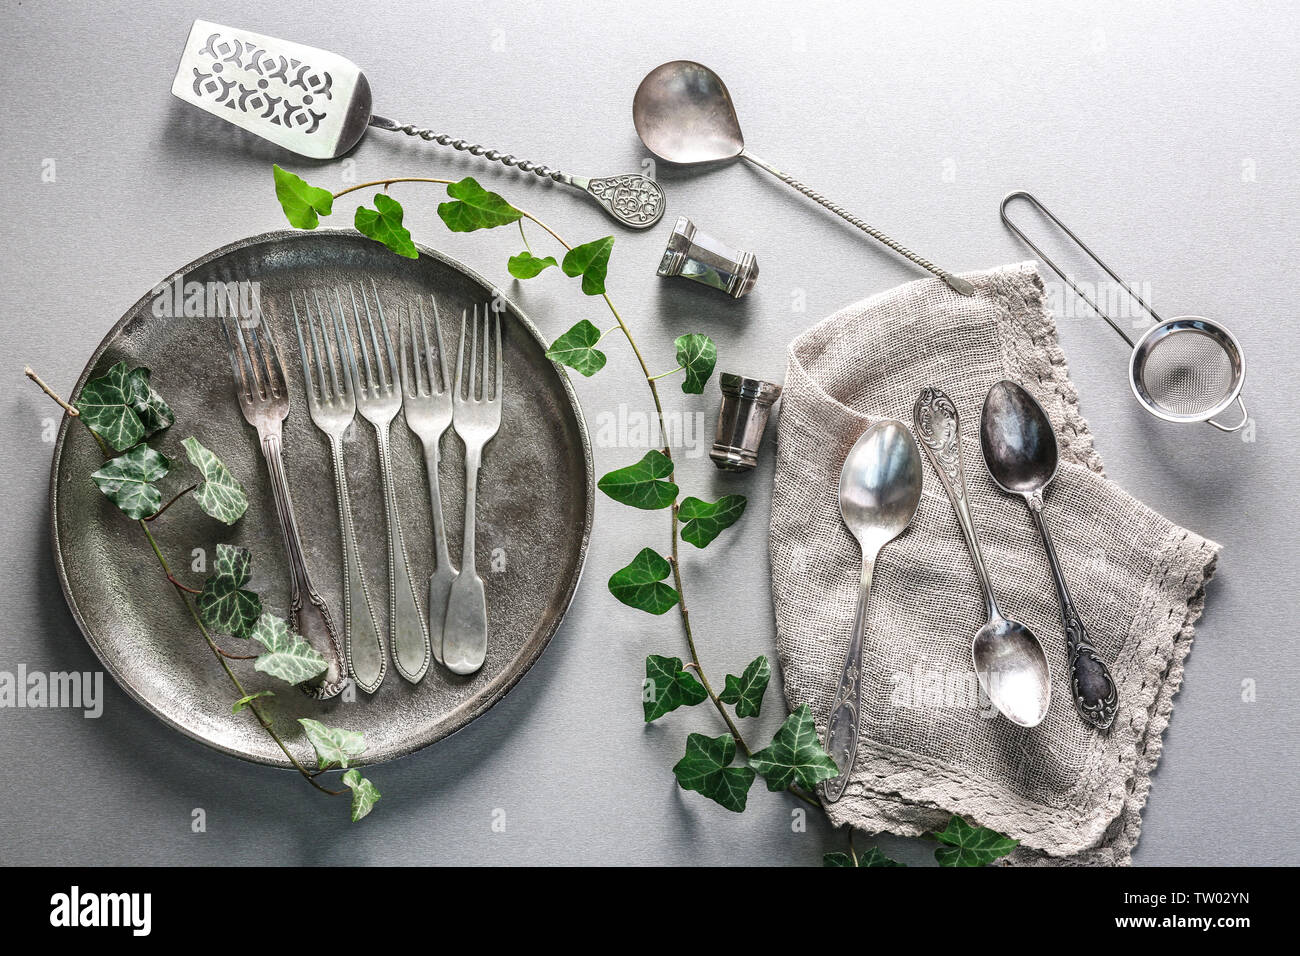 Cutlery set with plate and ivy, on gray background - Stock Image